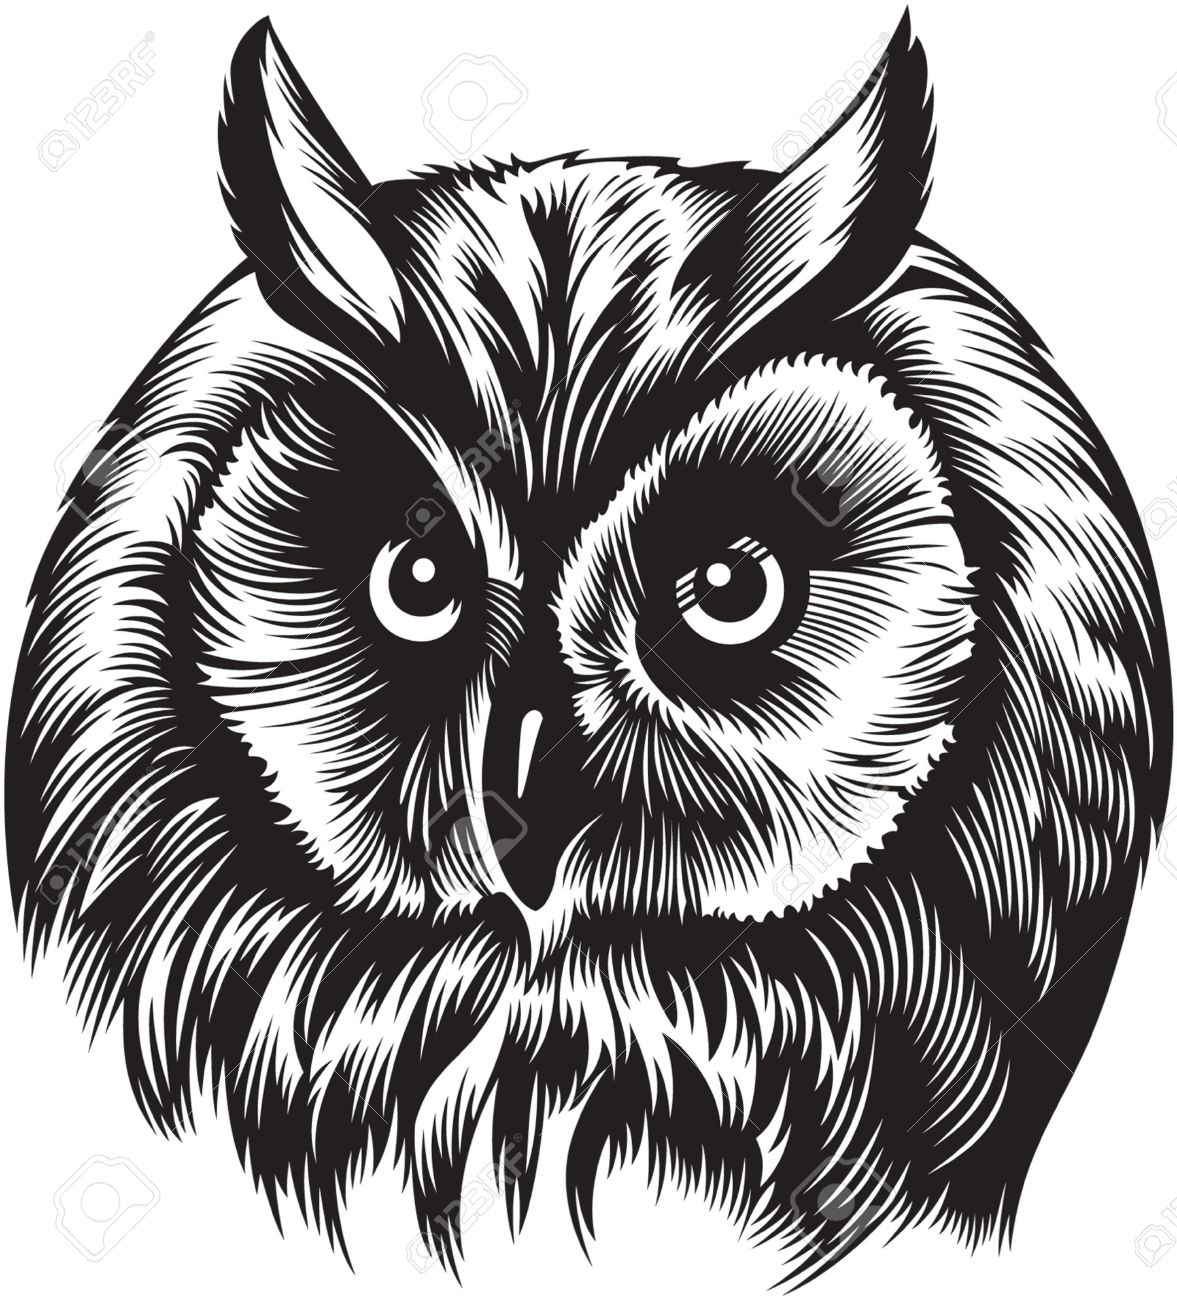 Eagle-owl clipart #2, Download drawings